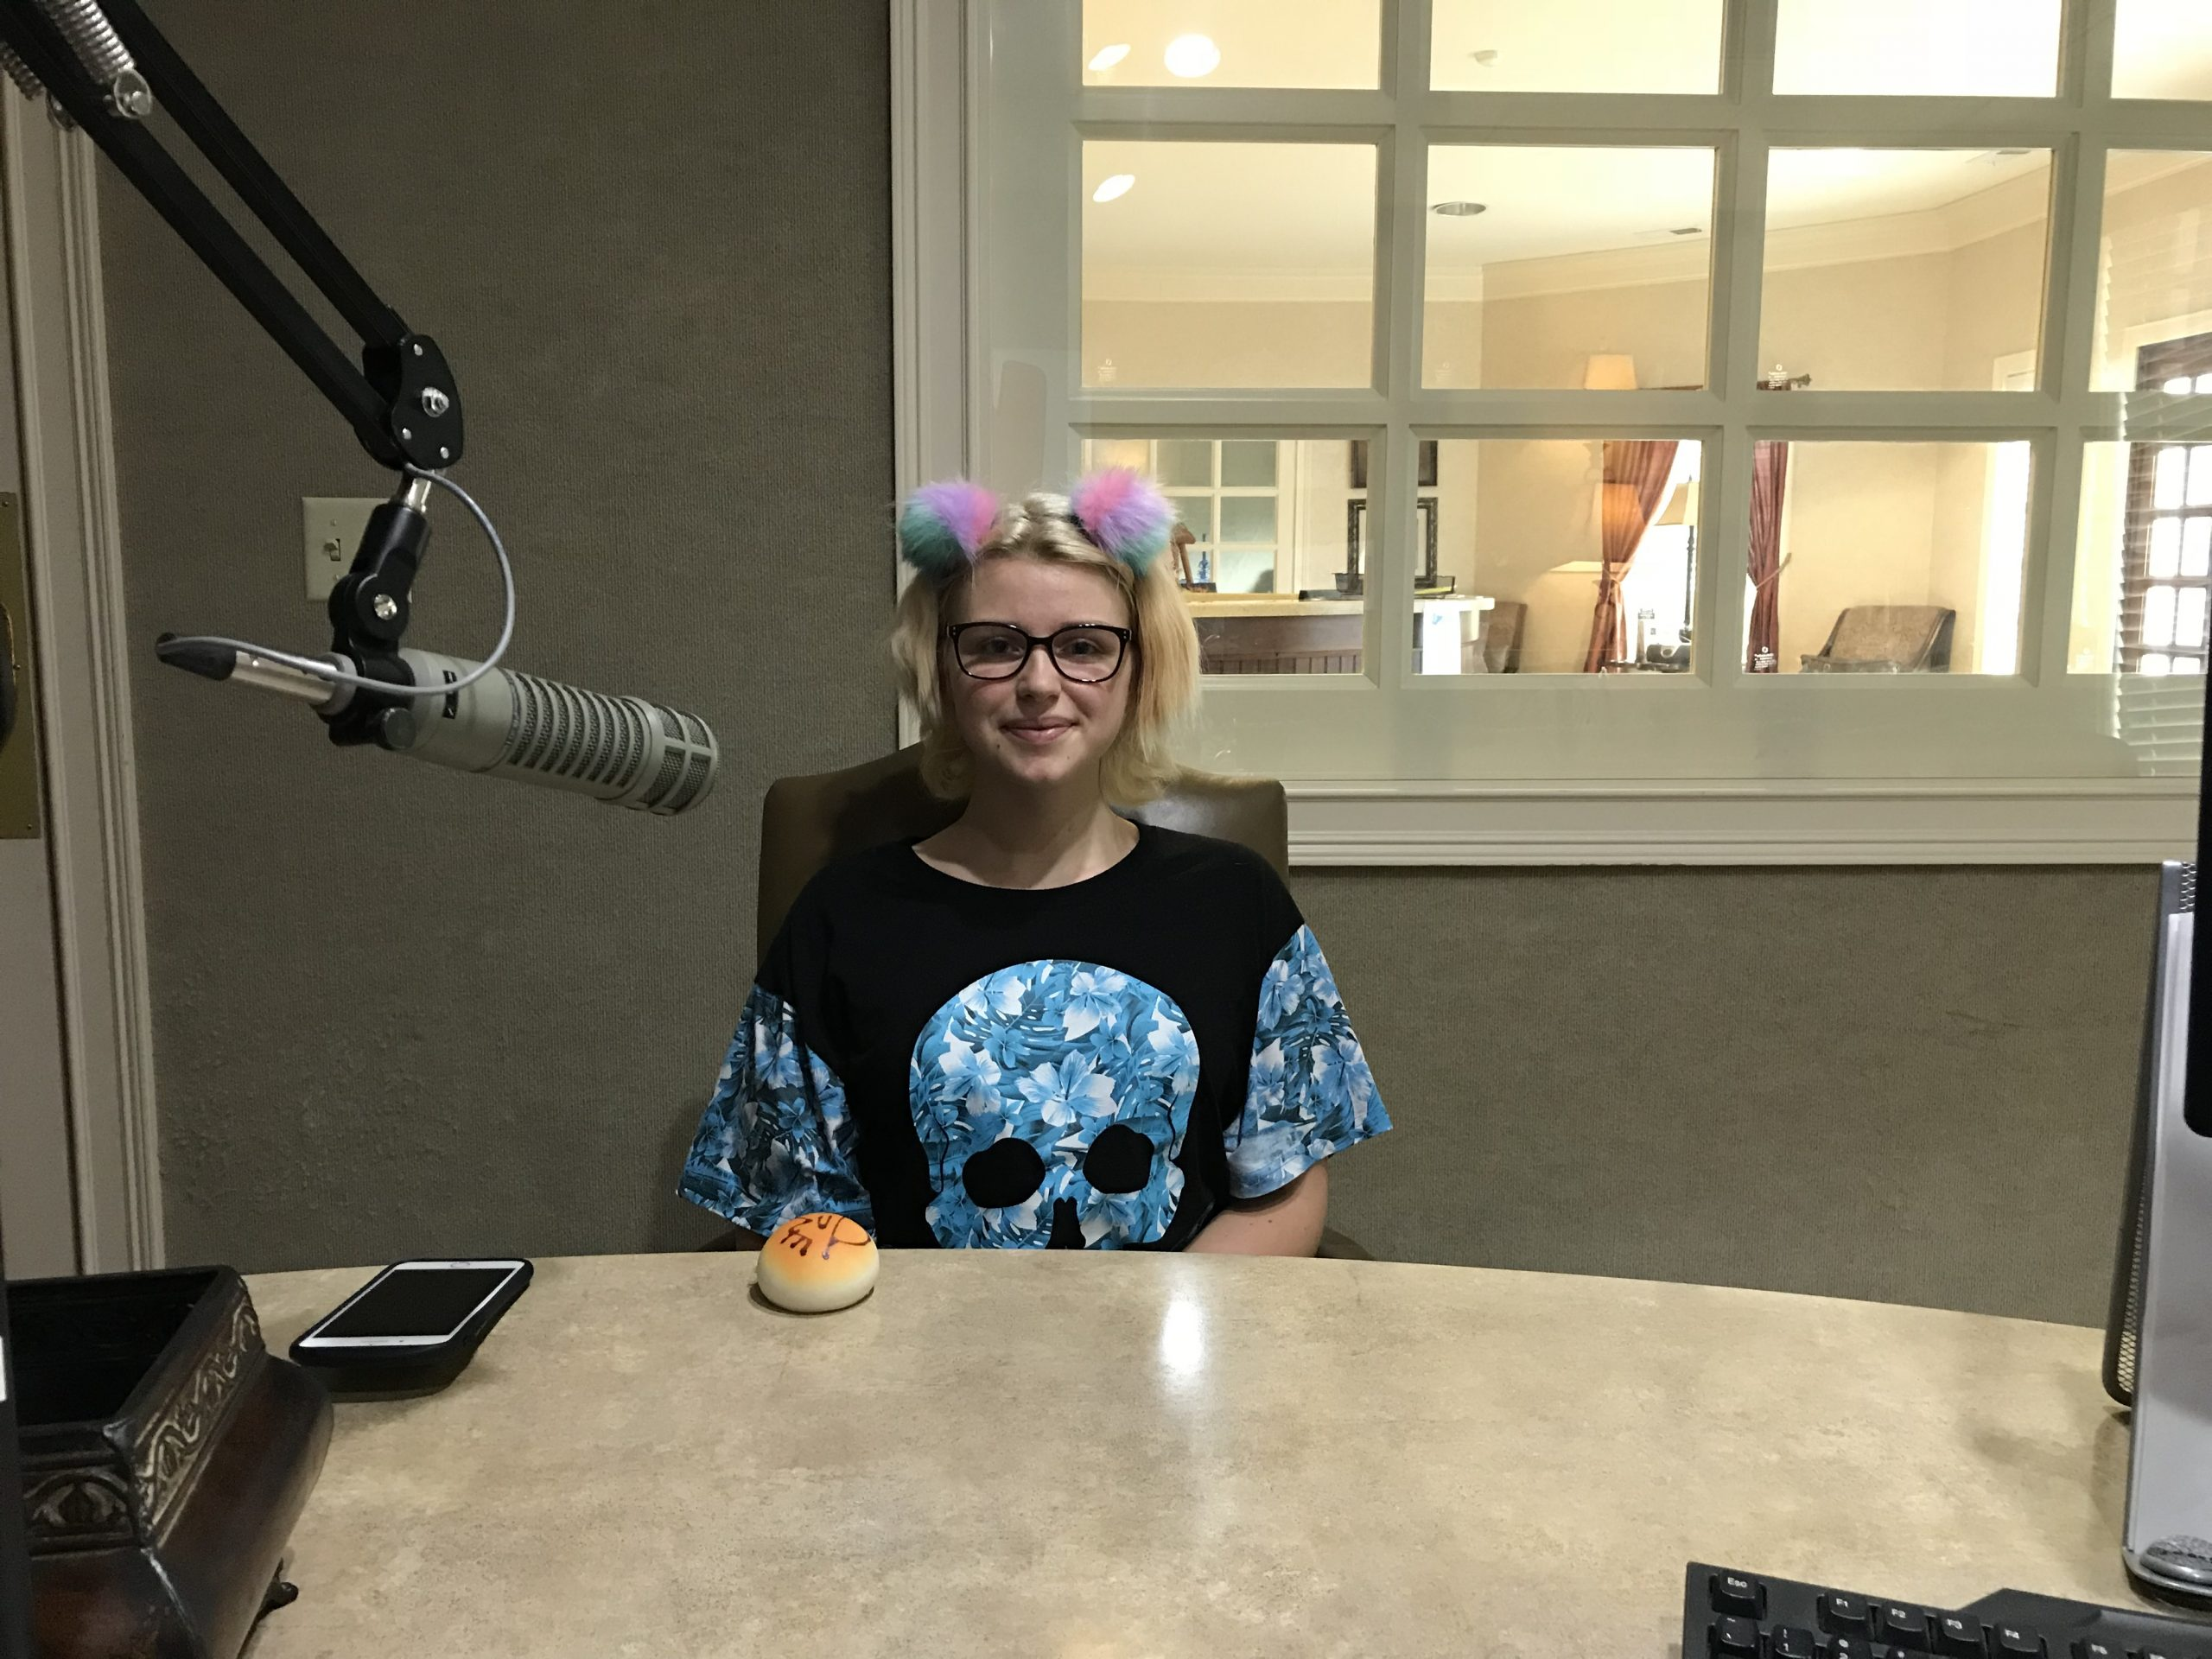 JCHS Junior Working to Help Those with Mental Illnesses